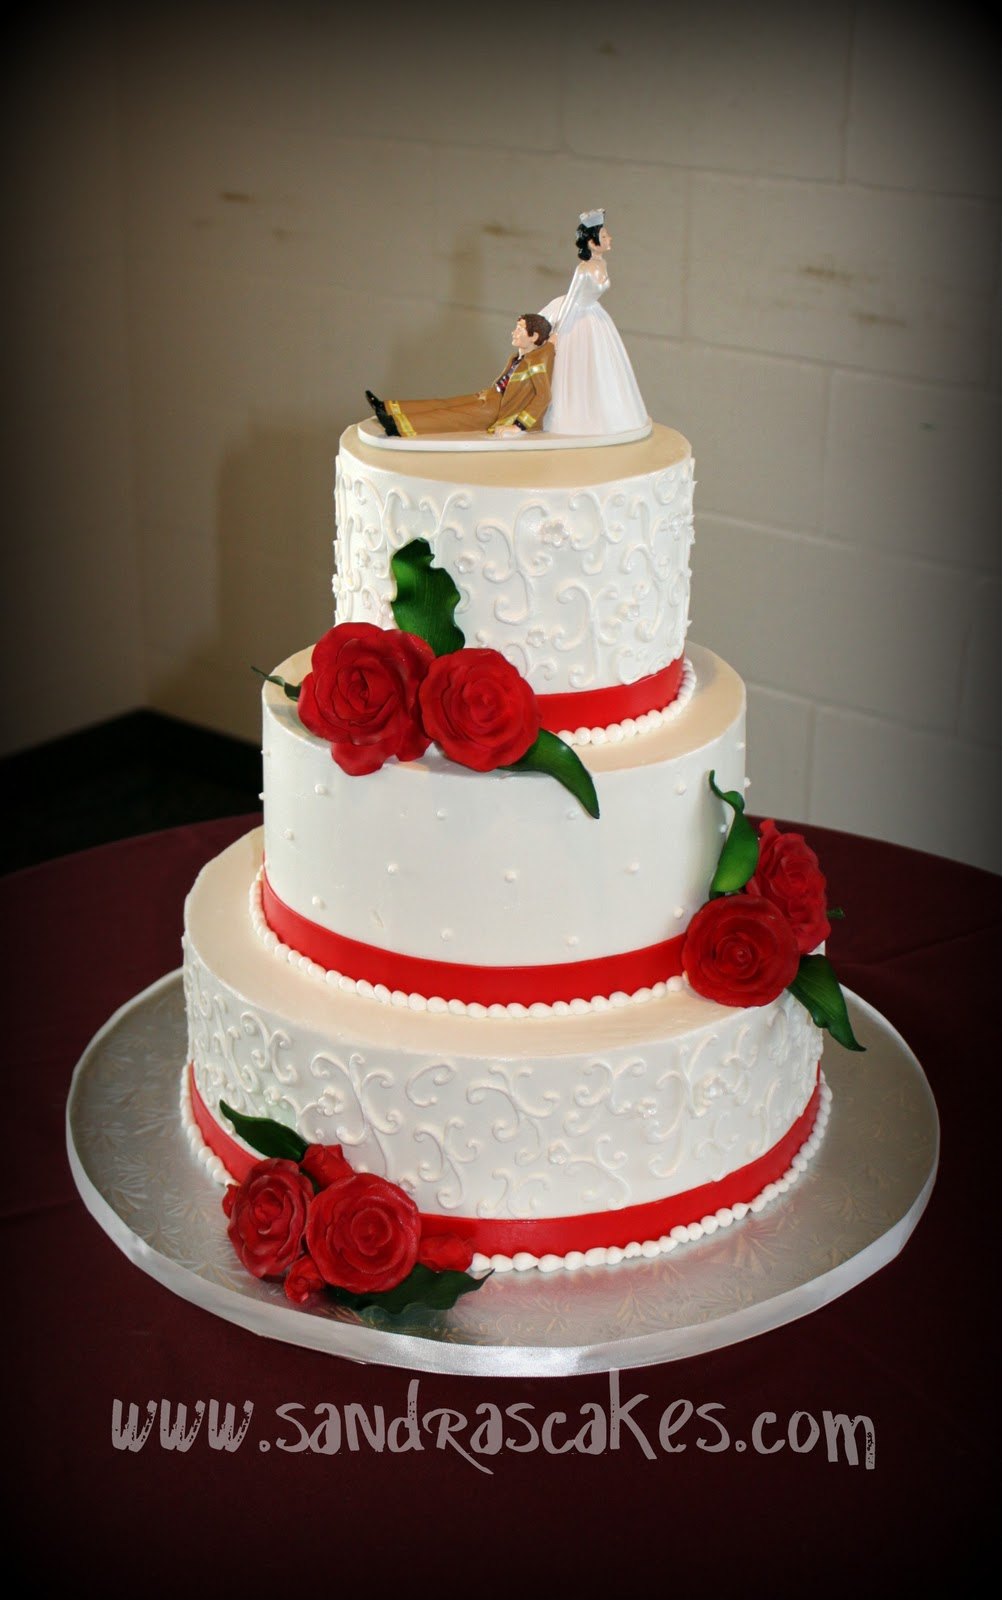 More Beautiful Wedding Cakes